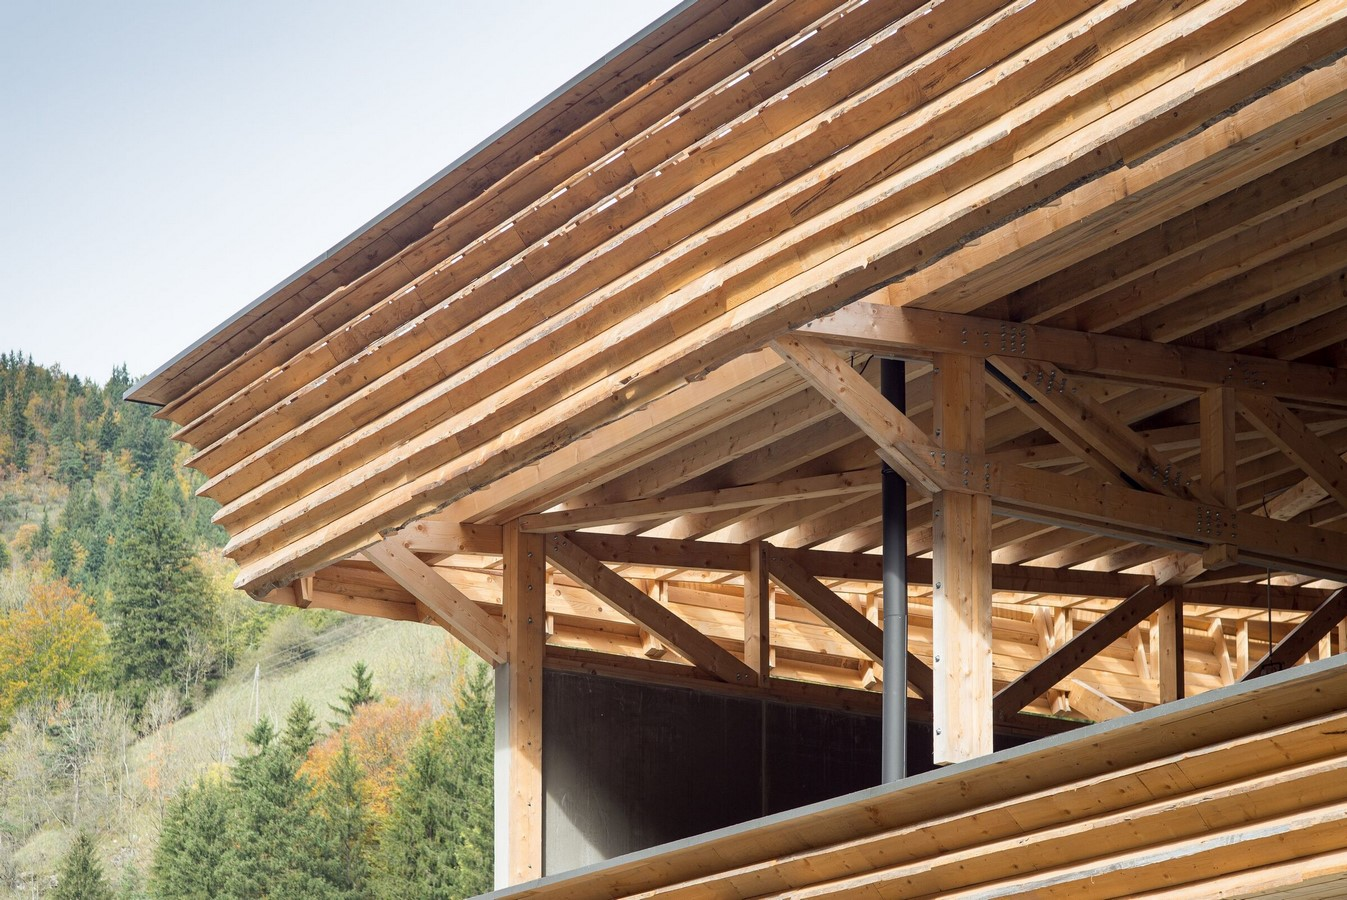 Eco-site with technical infrastructure in Vercors National Park, France designed by Atelier PNG - Sheet7